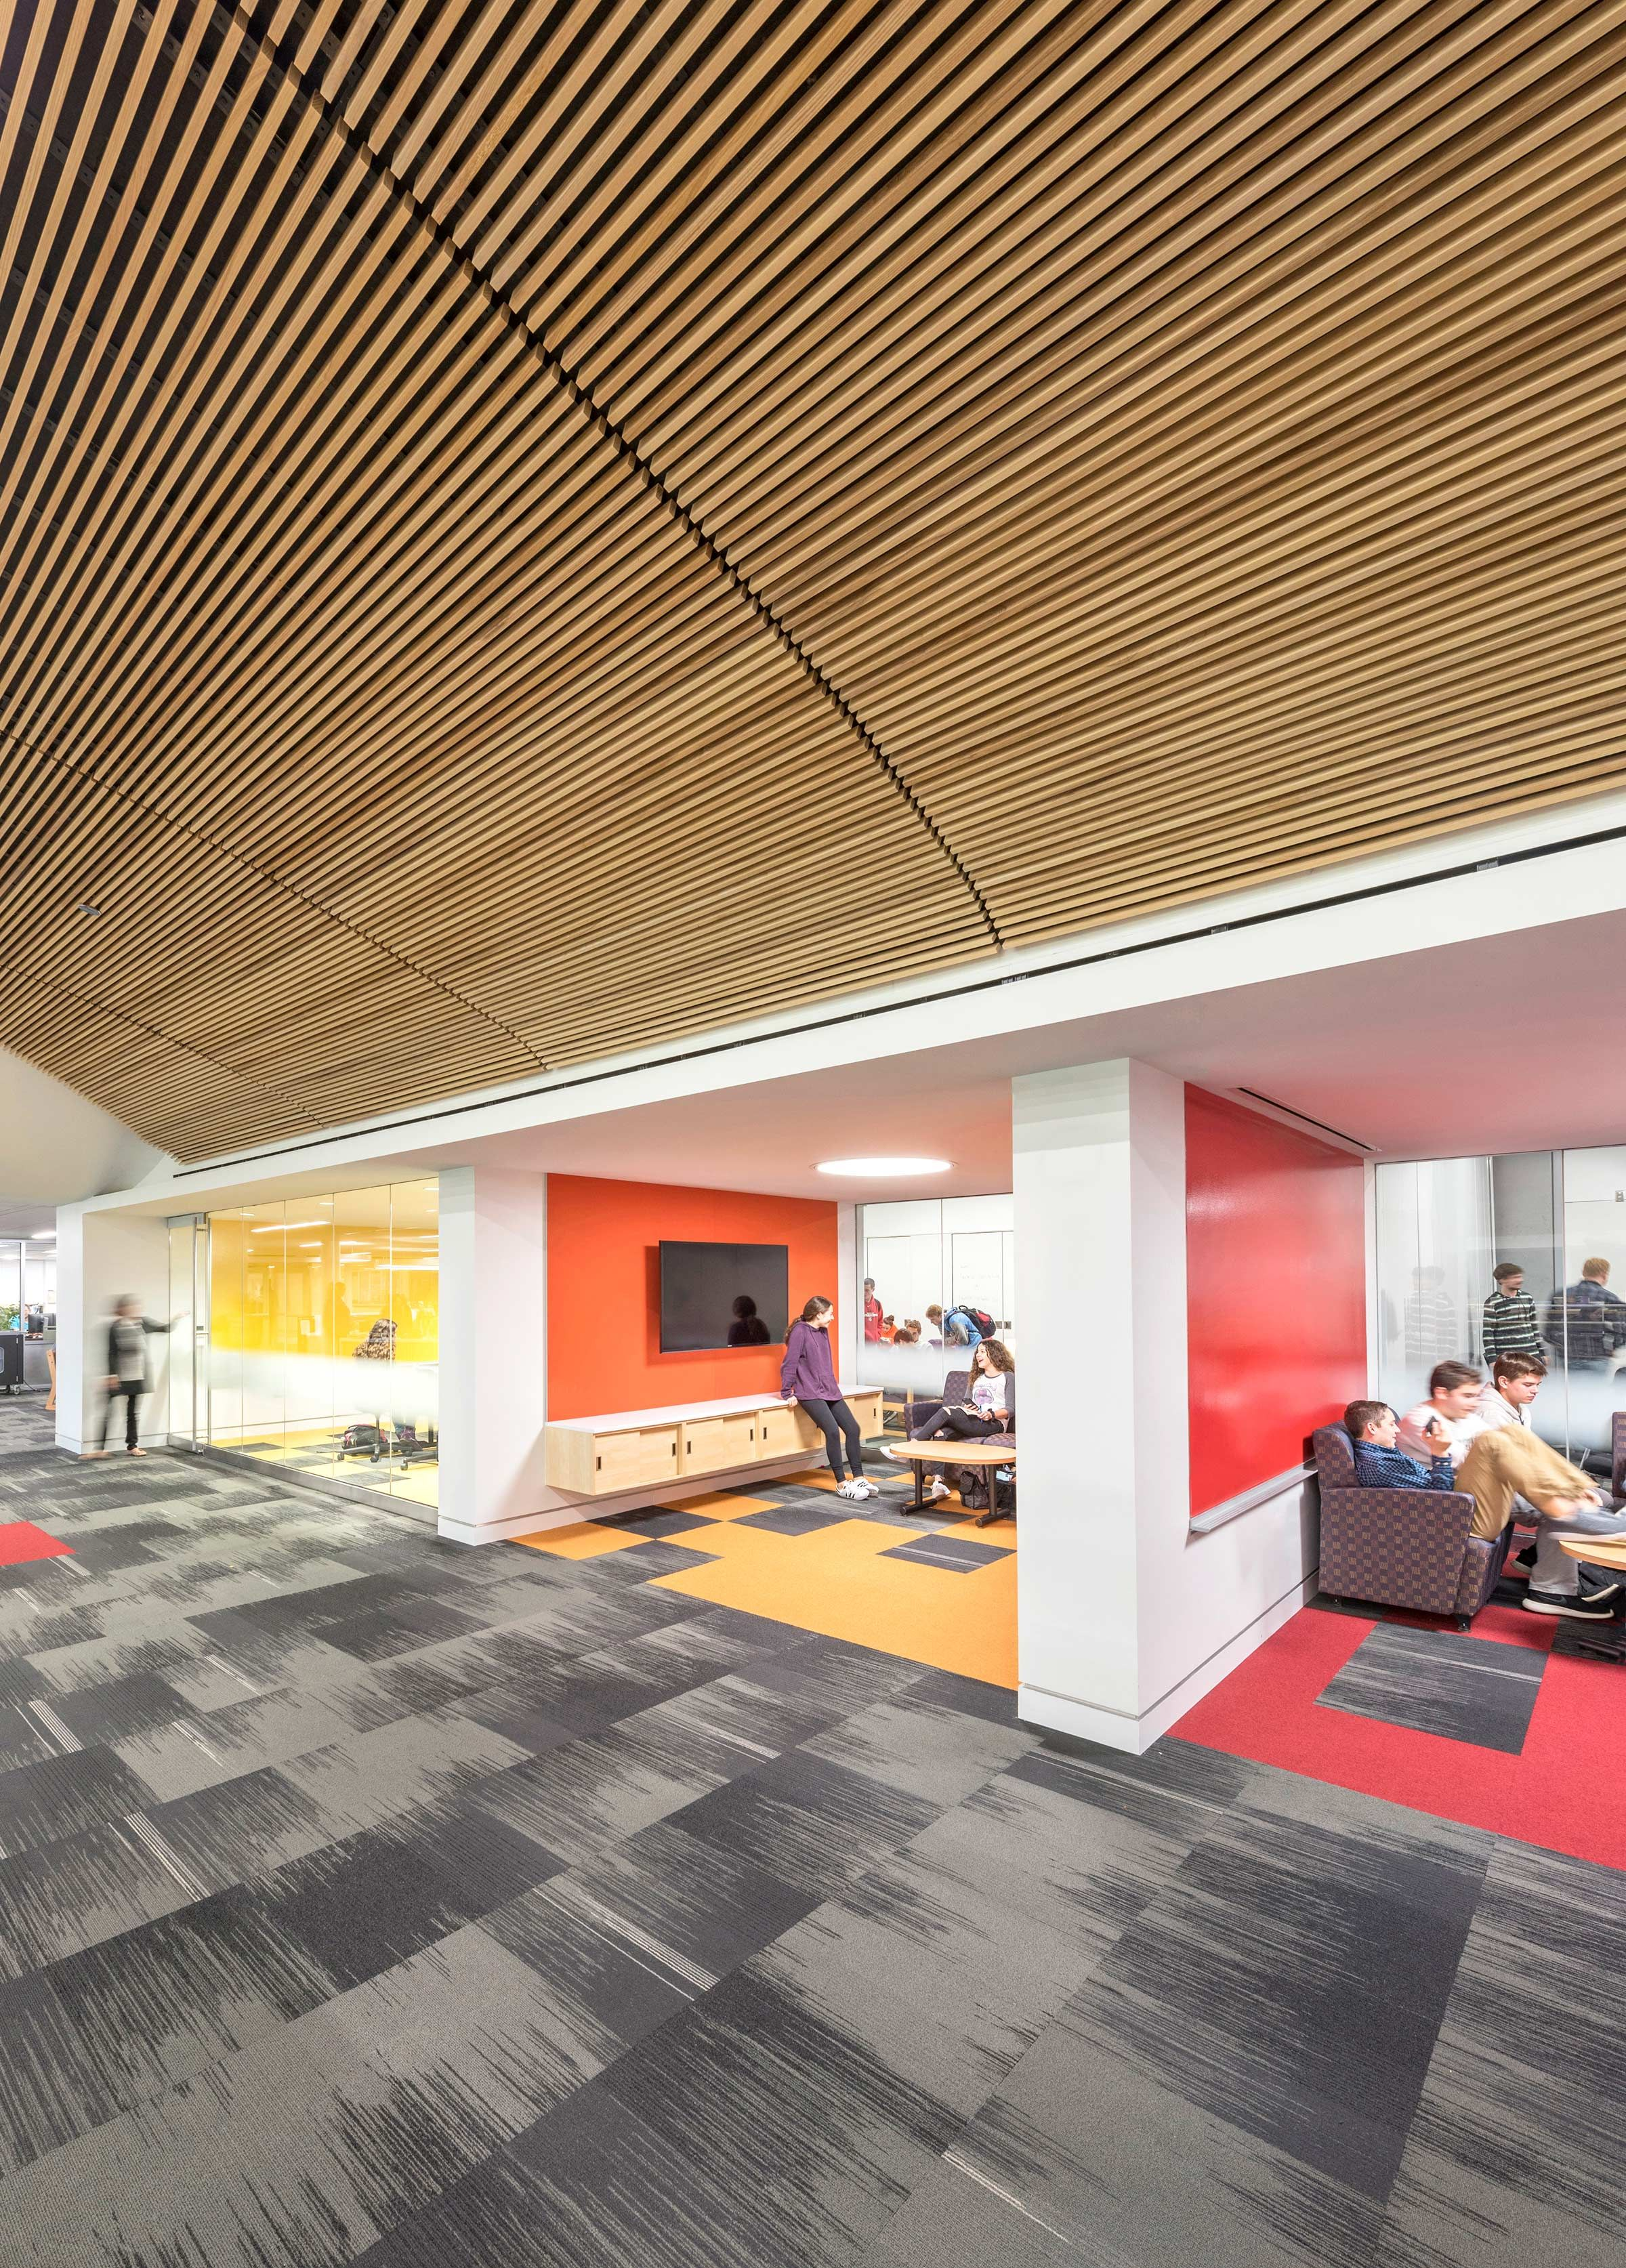 By removing a wall from breakout spaces, Deerfield High School, a public school in suburban Deerfield, Illinois, puts learning on display and makes it easier for teachers to supervise students working independently or in groups.